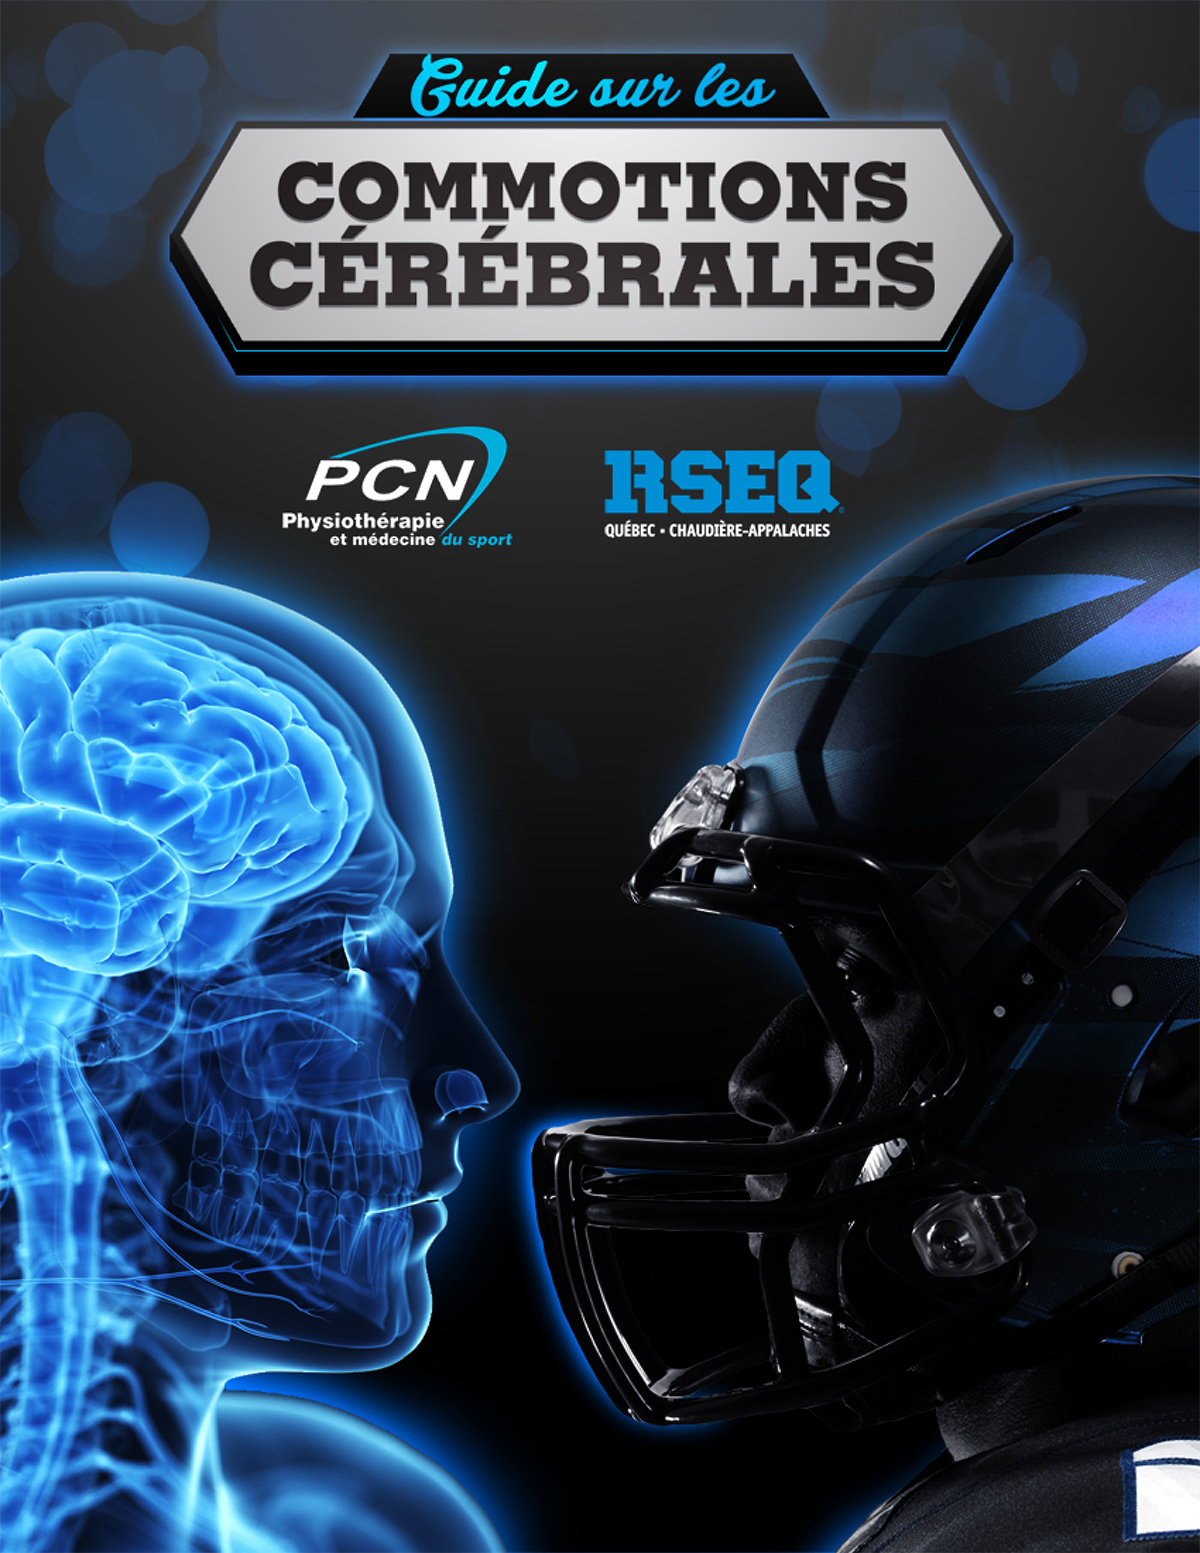 commotions-cerebrale-pcn